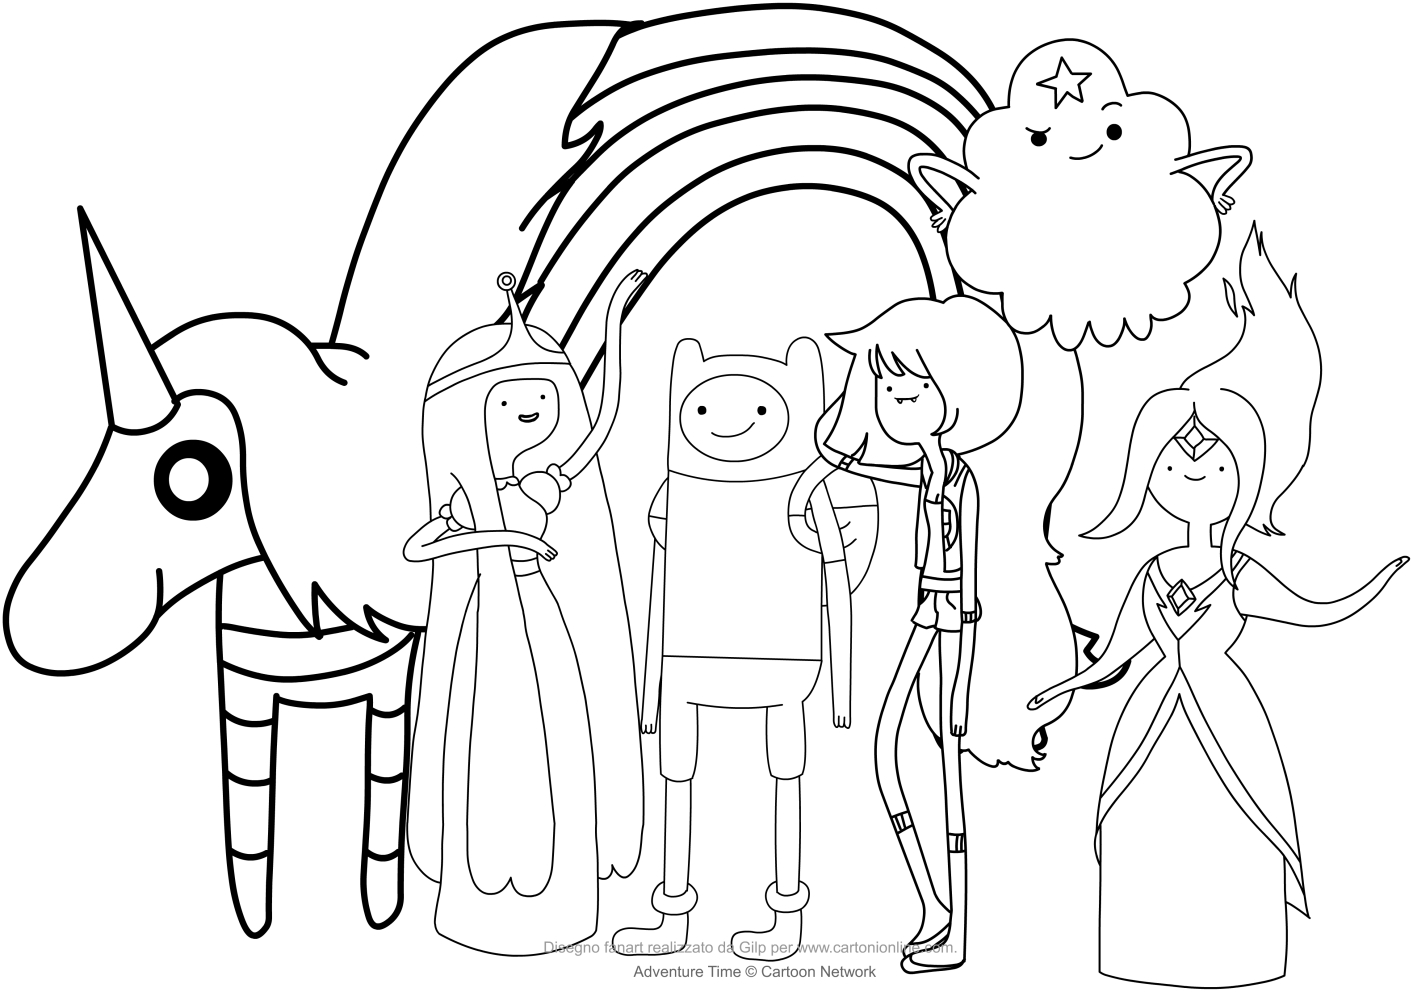 Disegno Di Finn E Le Principesse Adventure Time Da Colorare